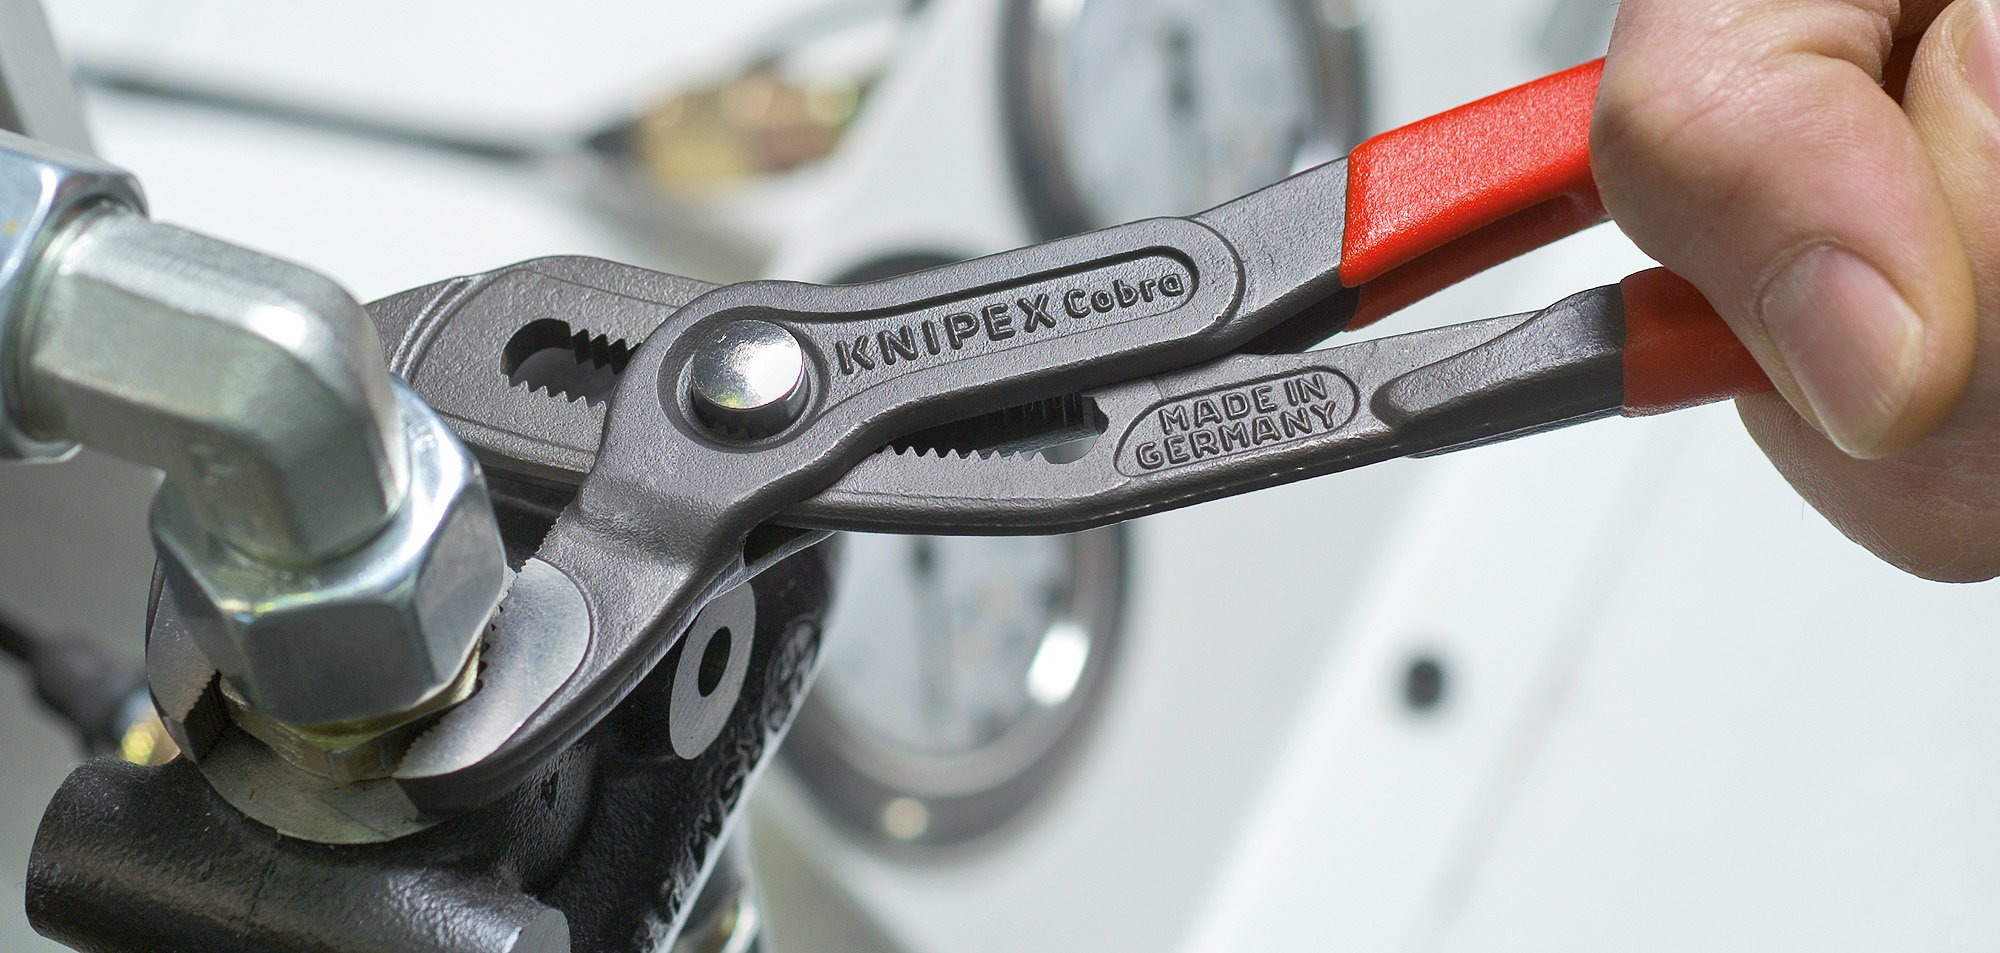 Knipex Cobra water pump plier 150mm by KNIPEX Tools